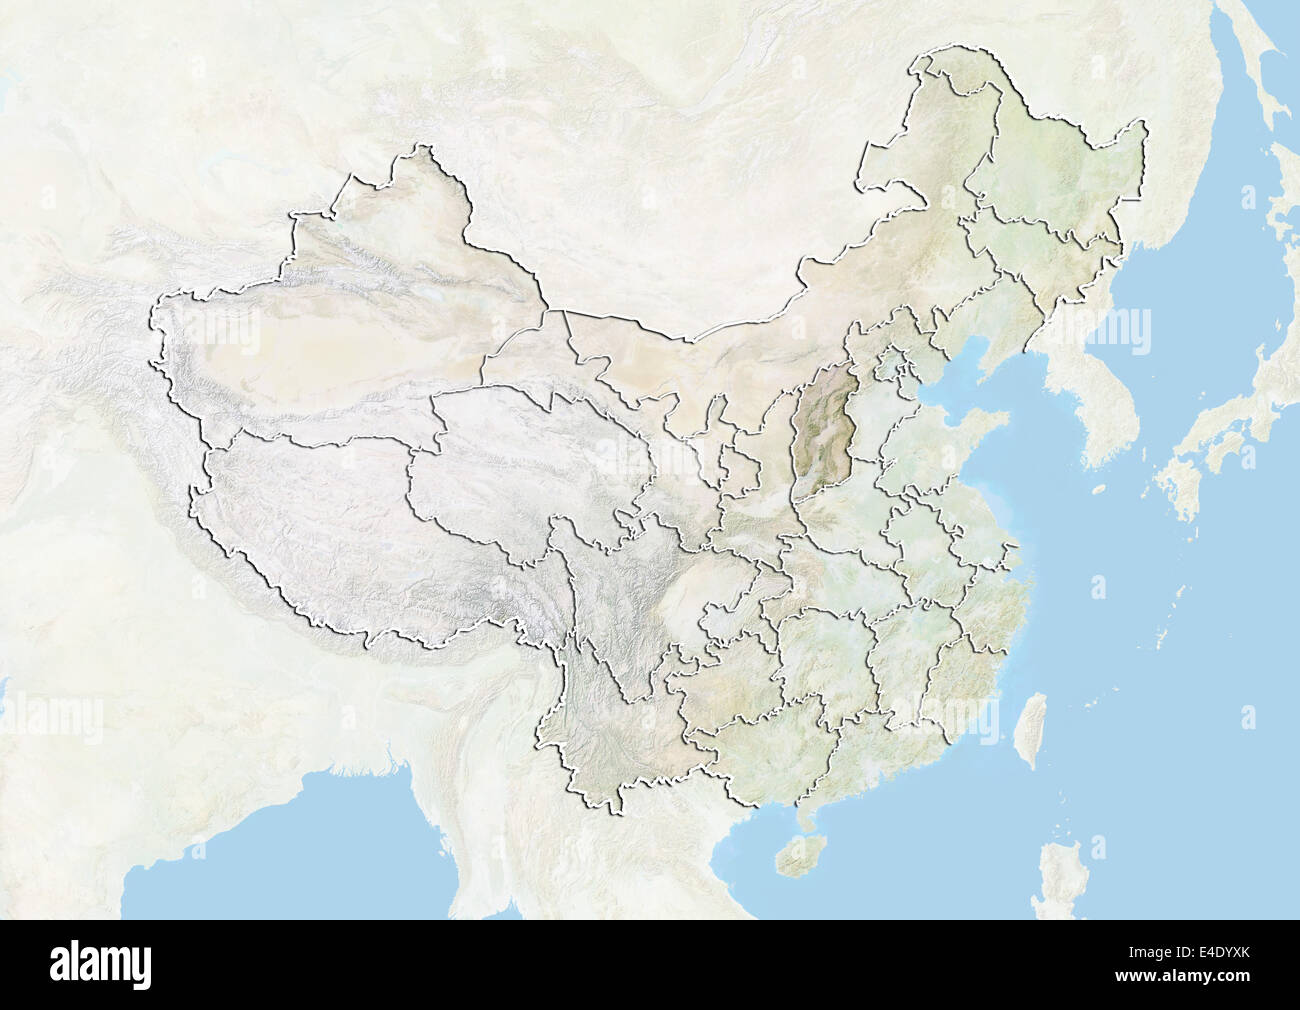 Shanxi China Map.Shanxi China Asia Map Stock Photos Shanxi China Asia Map Stock